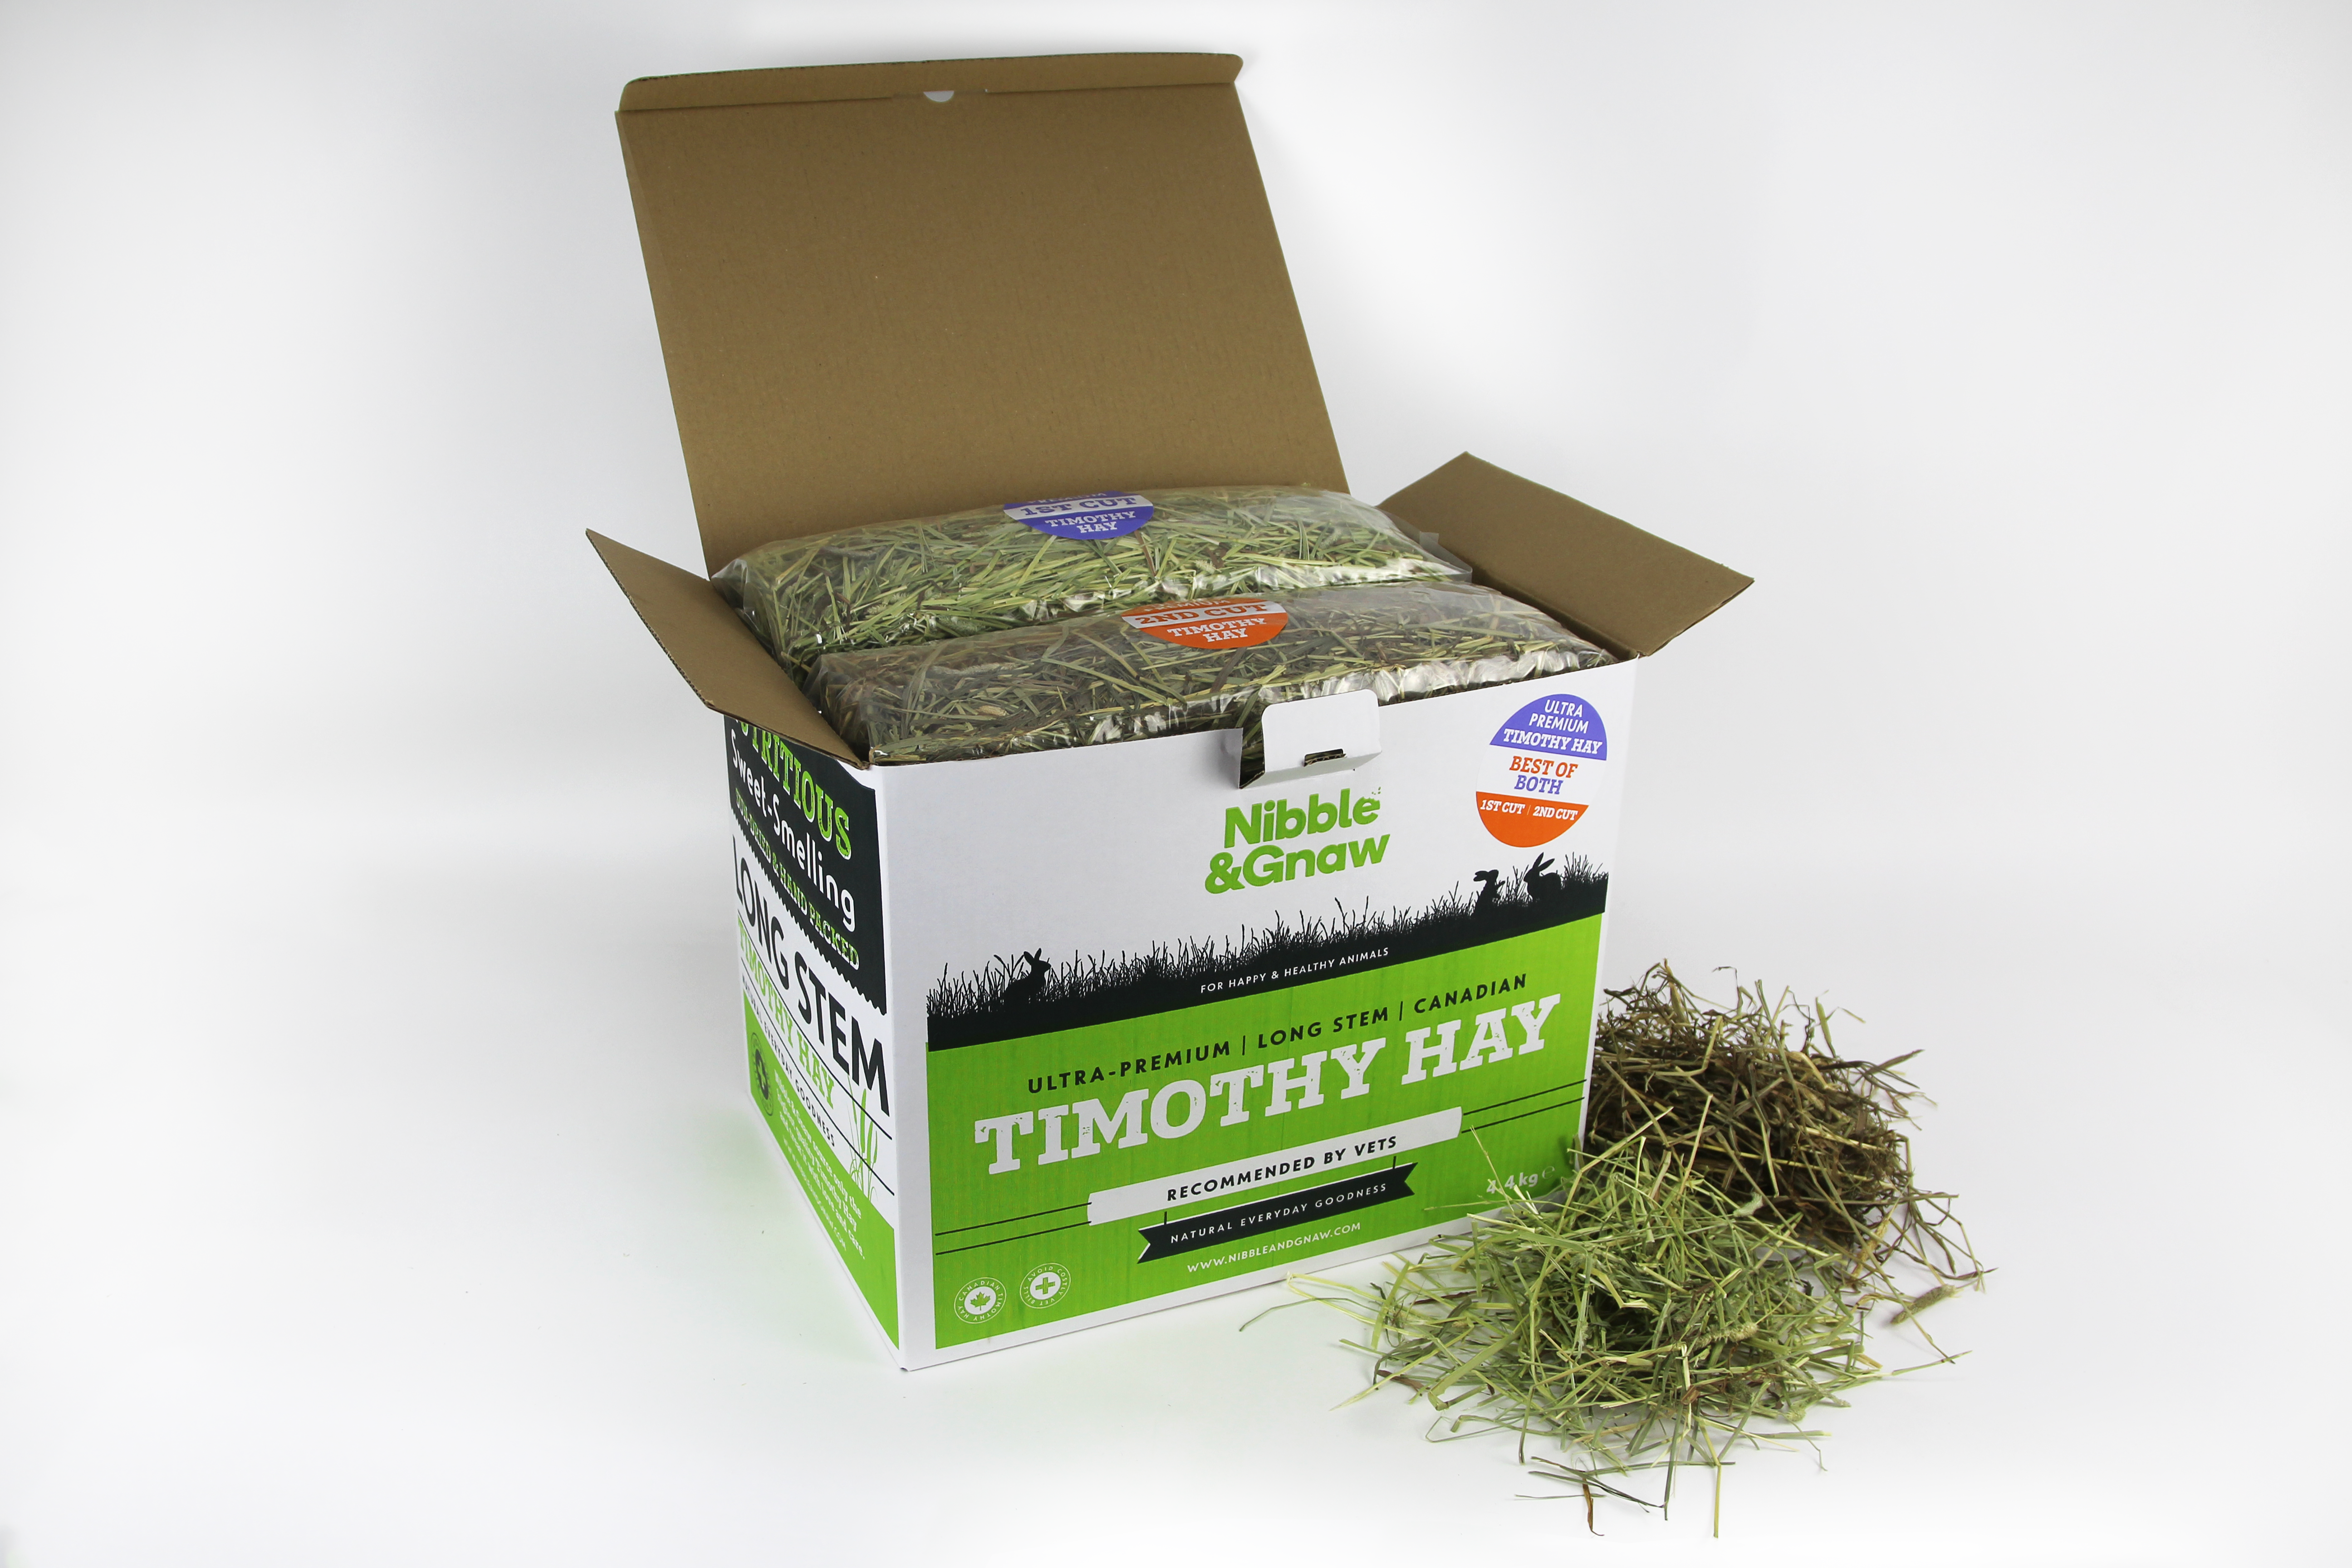 Best of Both - Ultra Premium Canadian Timothy Hay for Rabbits and Guinea Pigs